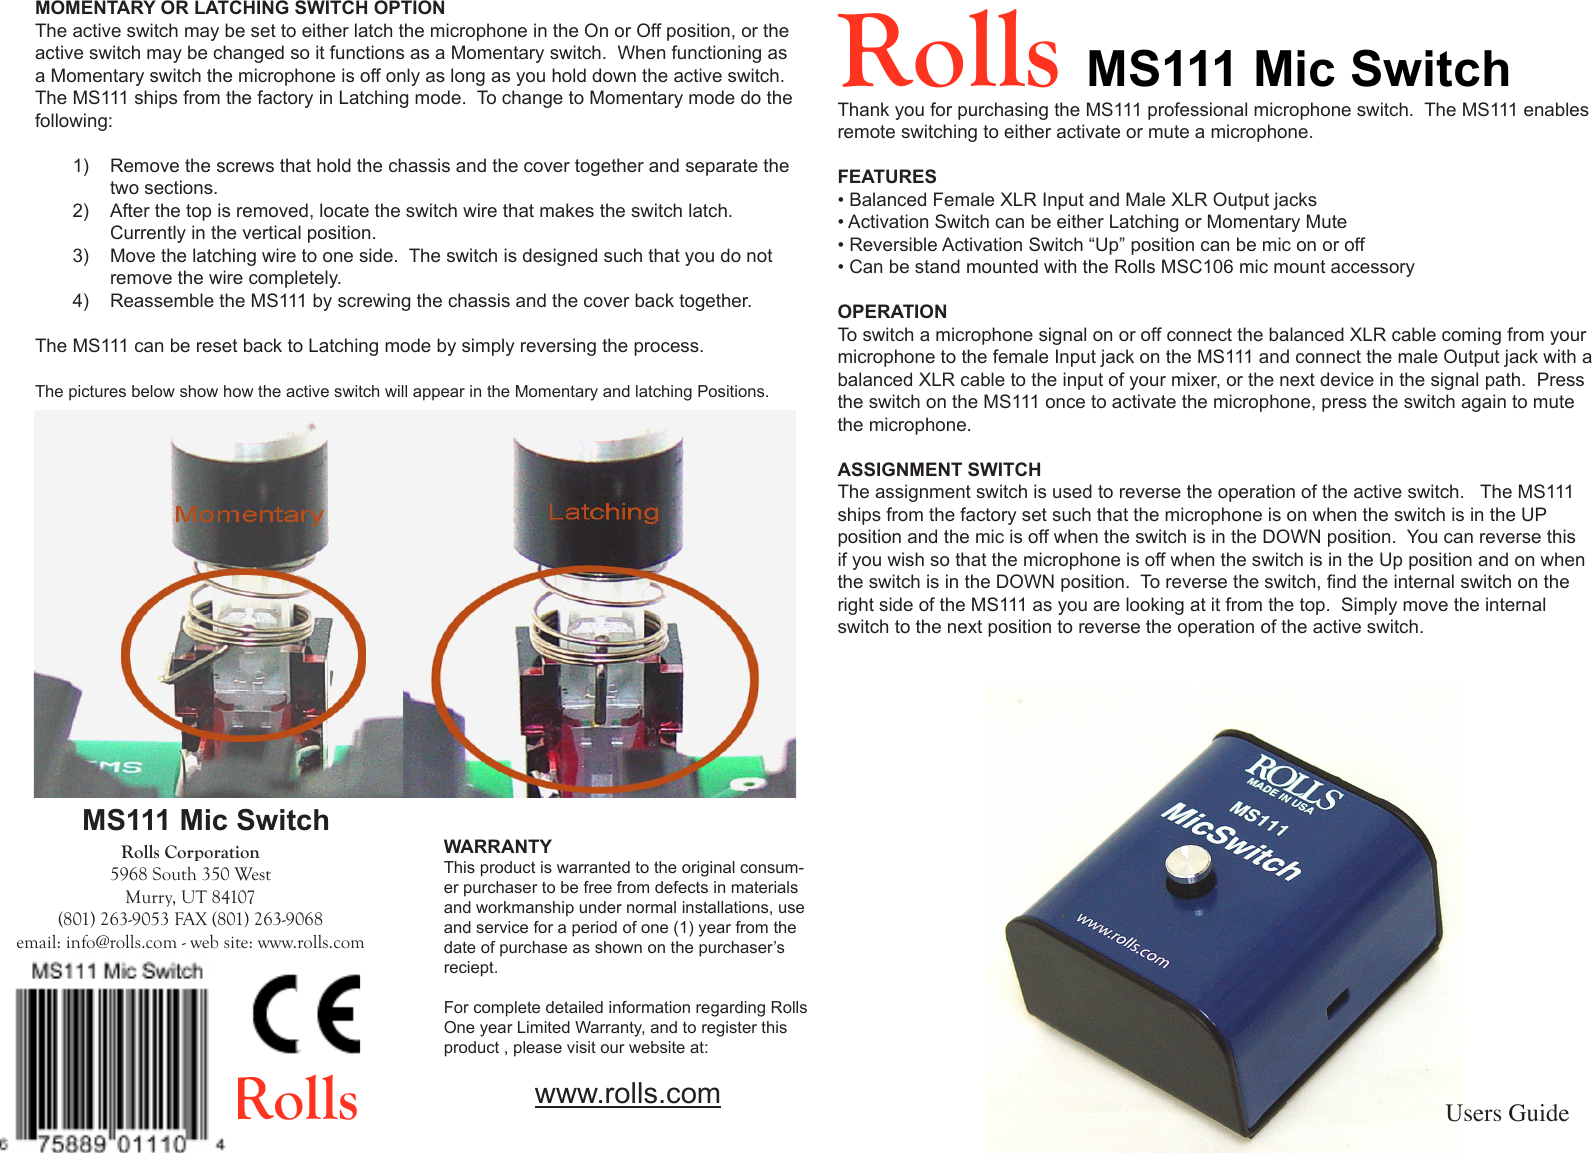 Rolls Mic Switch Ms111 Users Manual Wiring A 1 4 Out Put Jack